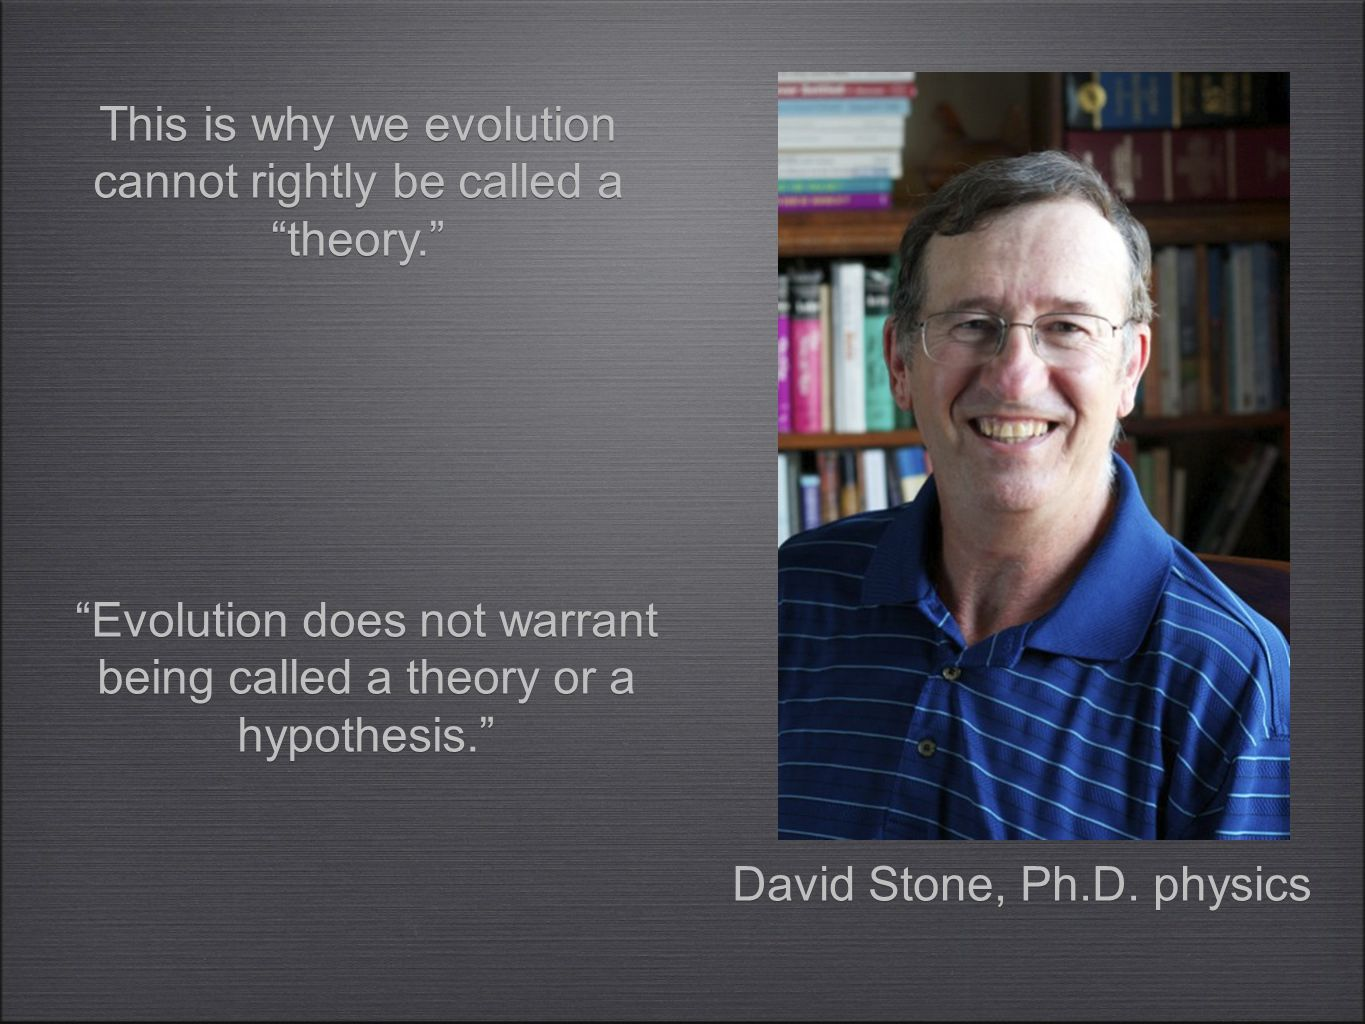 Evolution does not warrant being called a theory or a hypothesis. This is why we evolution cannot rightly be called a theory. David Stone, Ph.D.